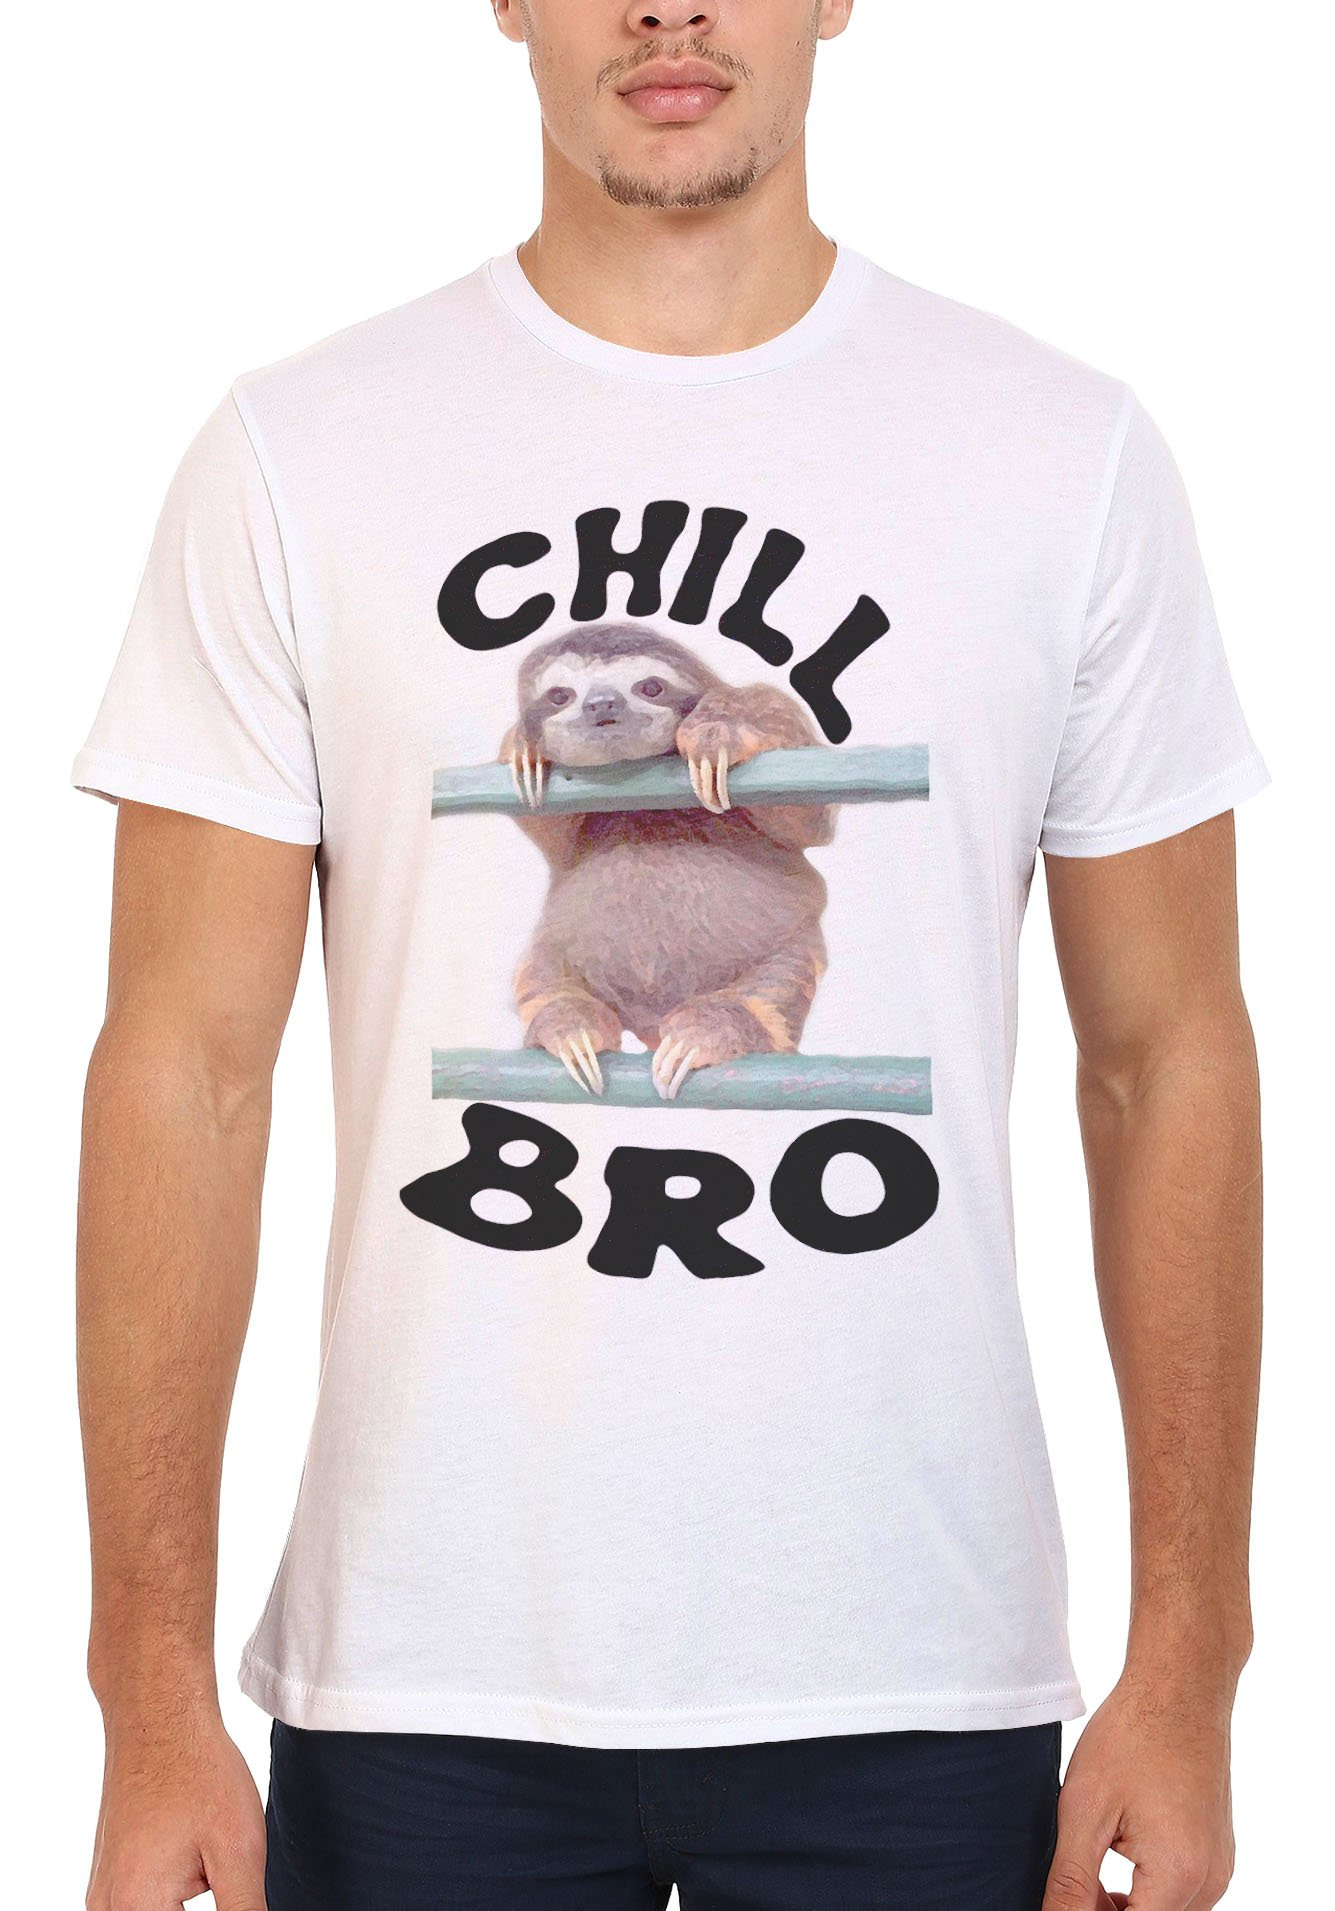 Chill Bro Sloth Lazy Animal Novelty Men Women Unisex Top T Shirt -